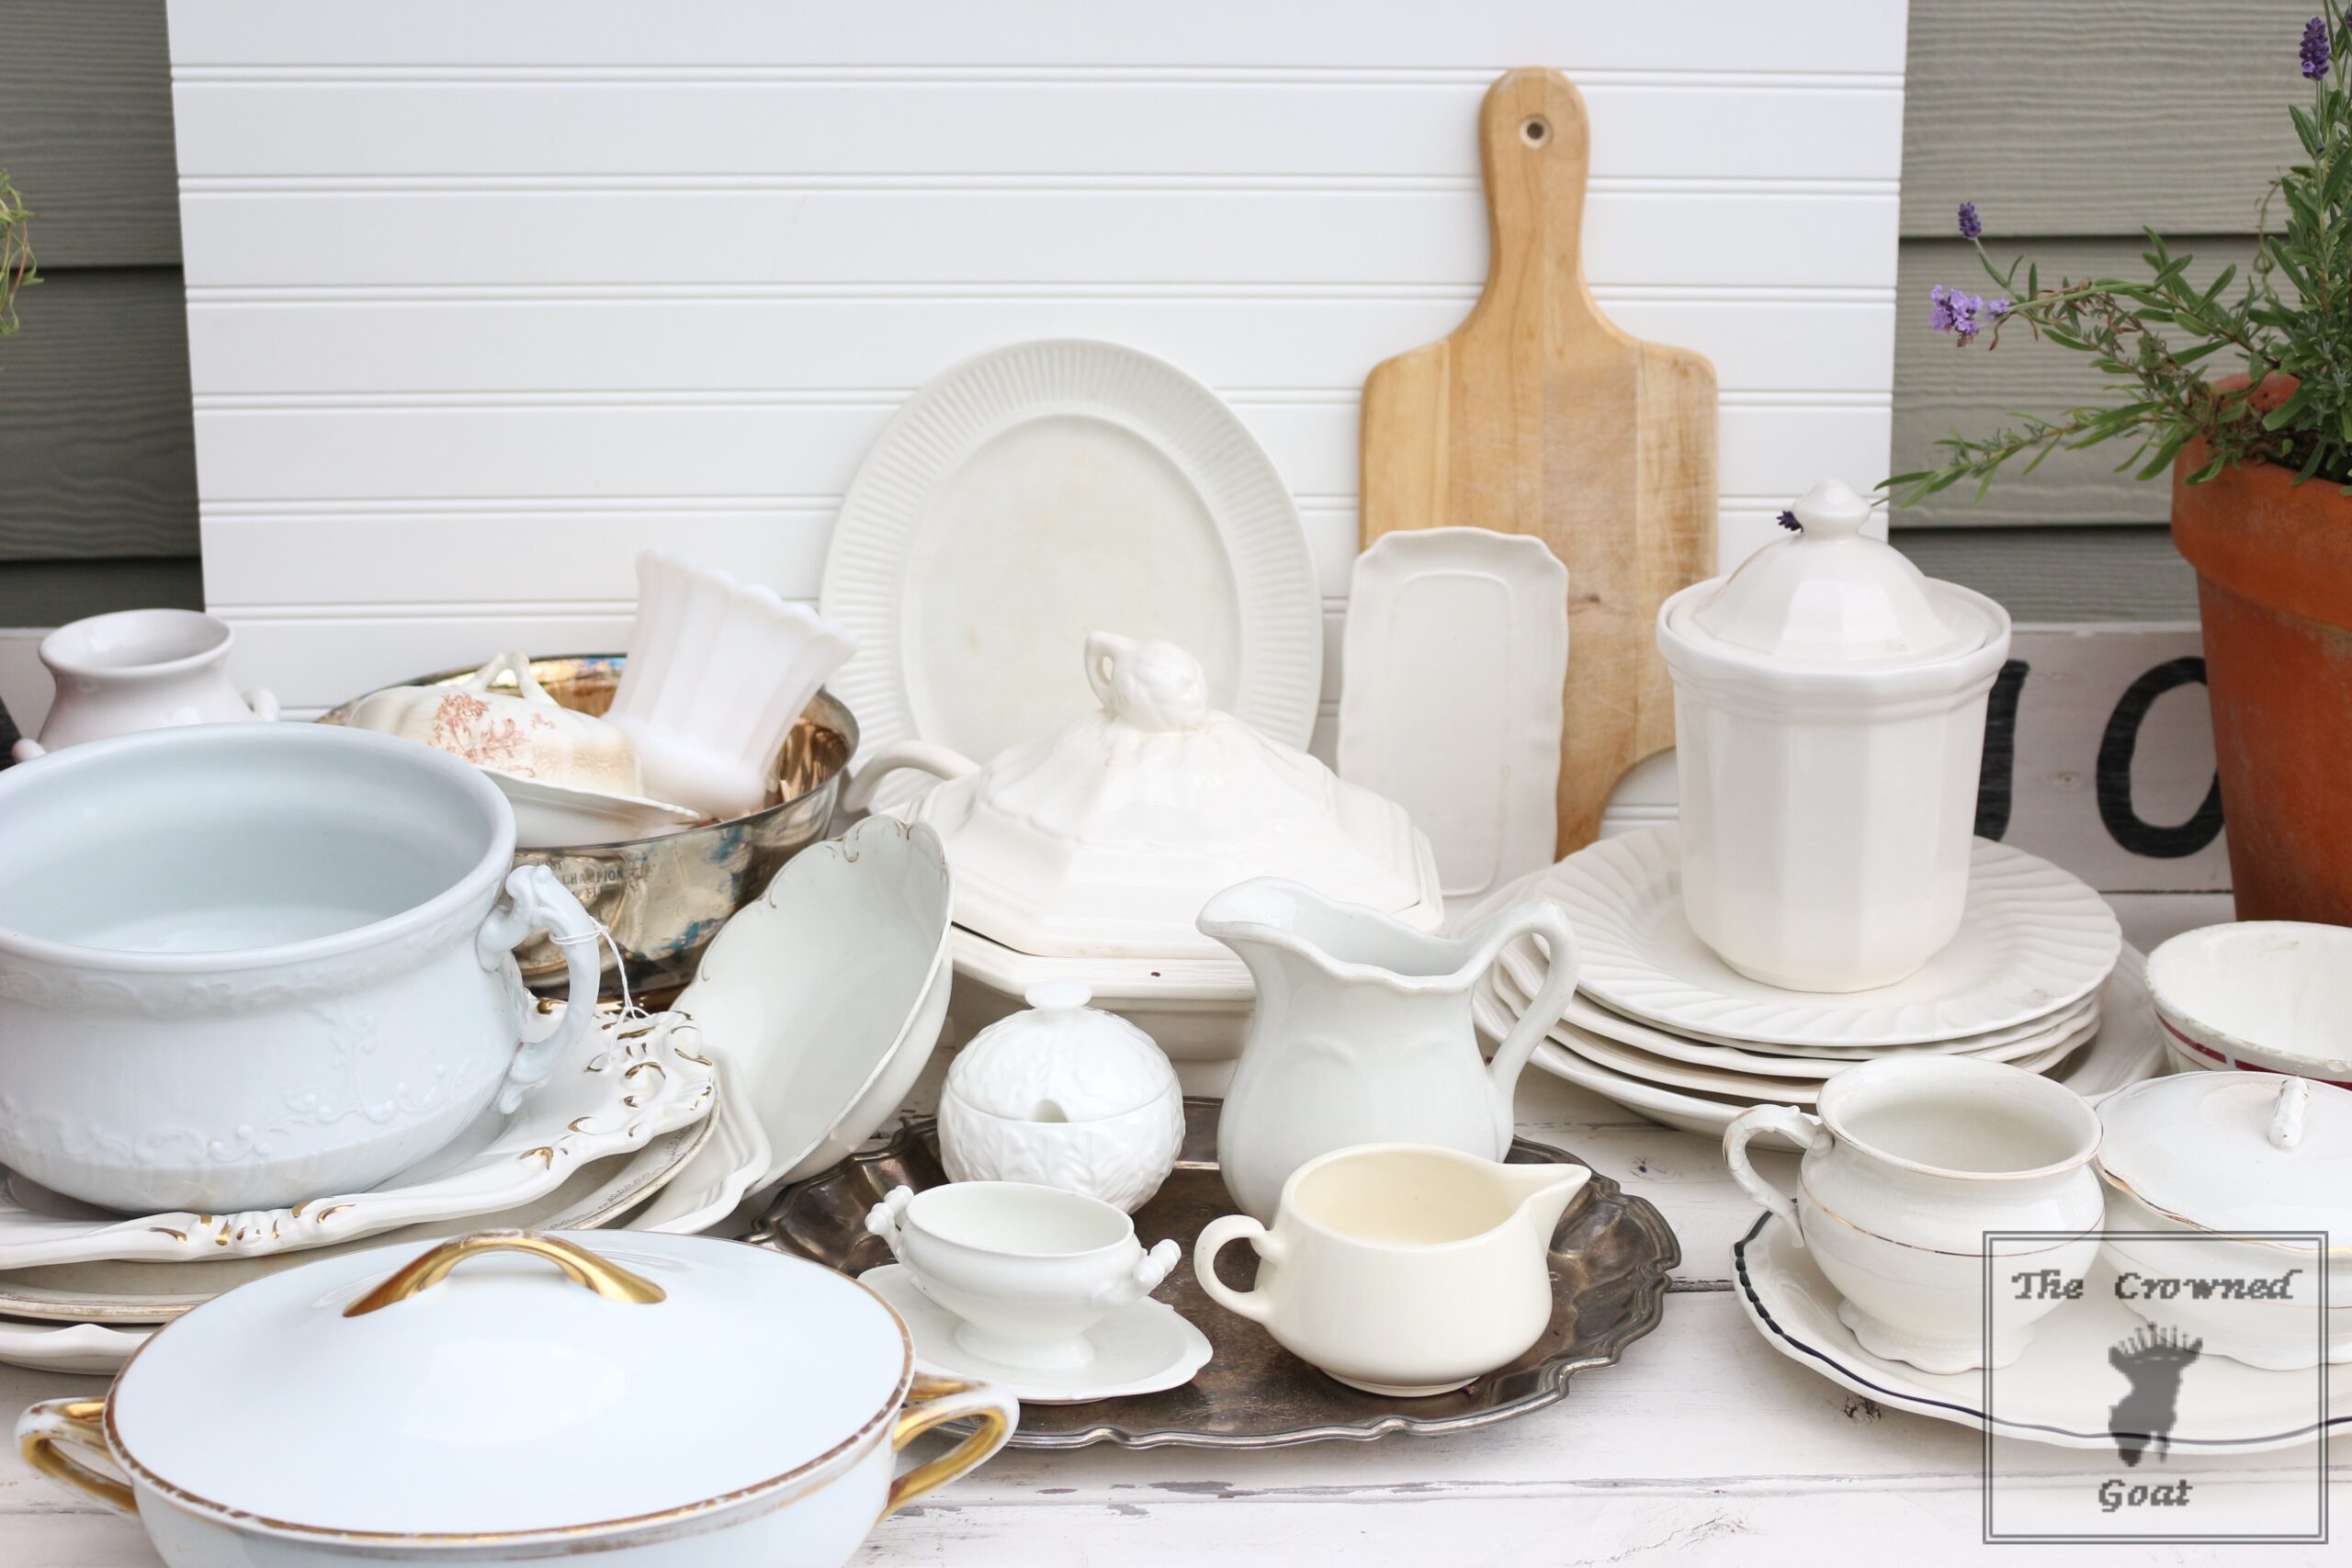 5 Things to Consider When Shopping for Home Décor Accessories